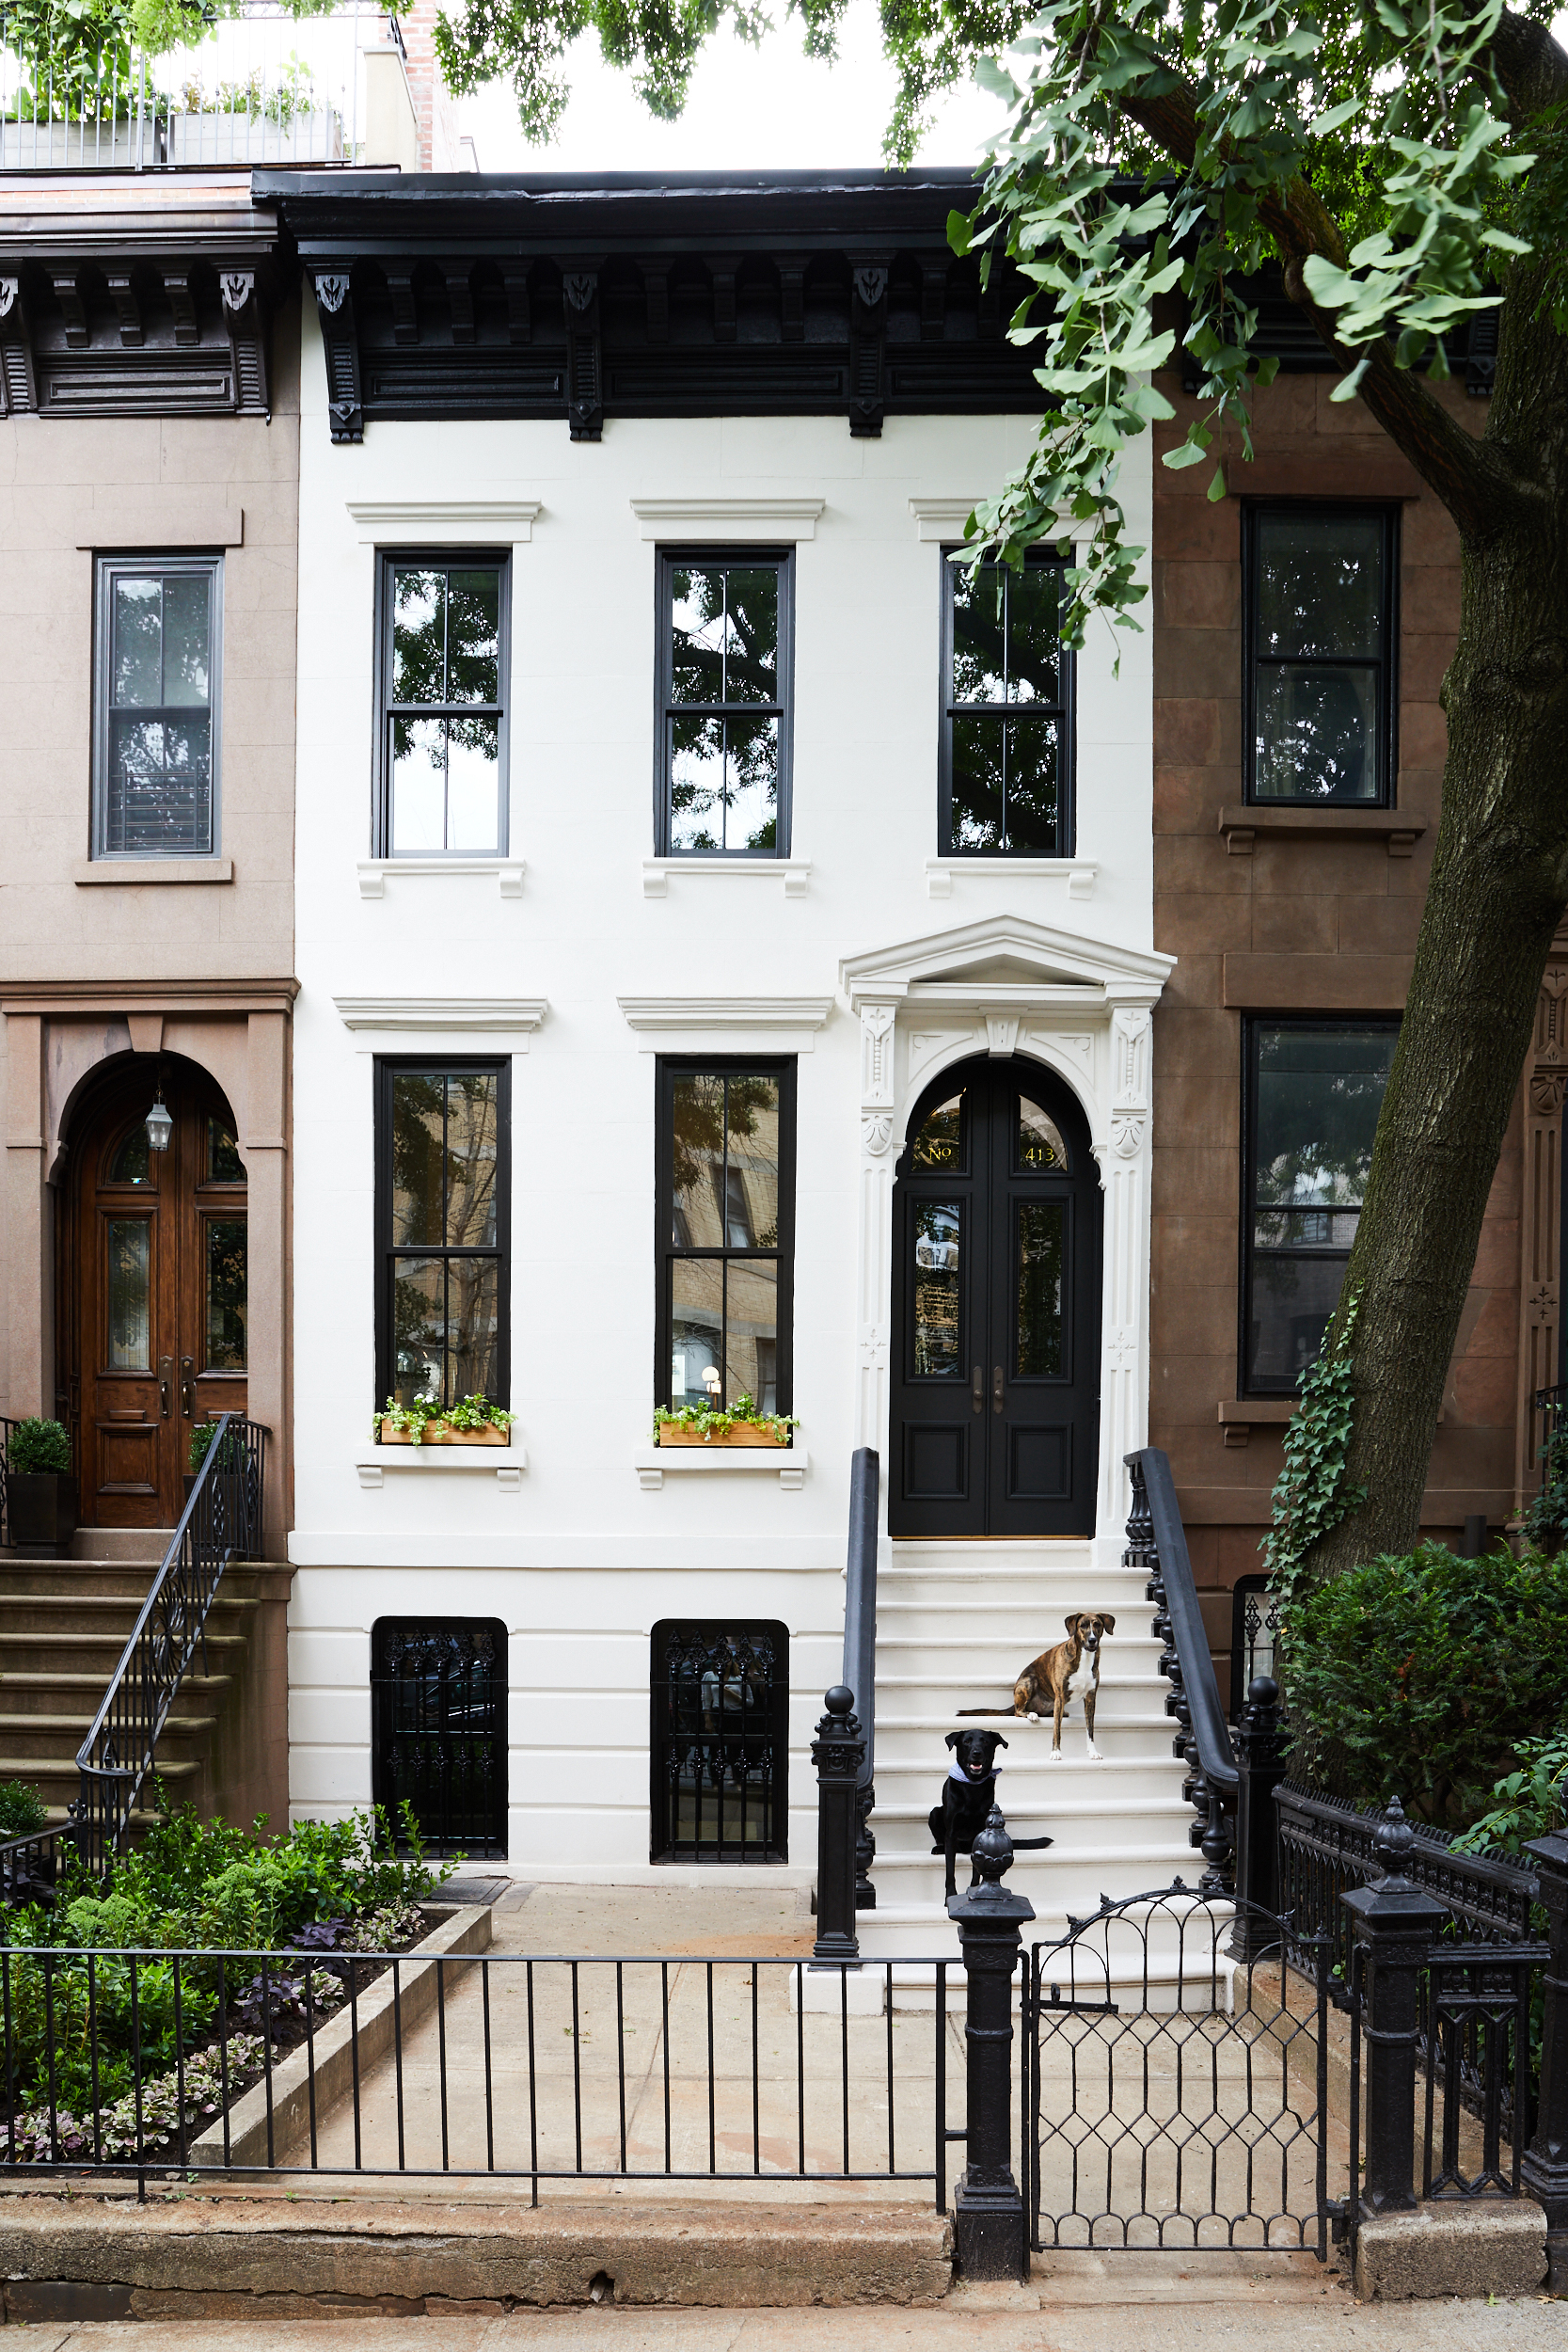 Exterior brownstone 8th street townhouse.jpg